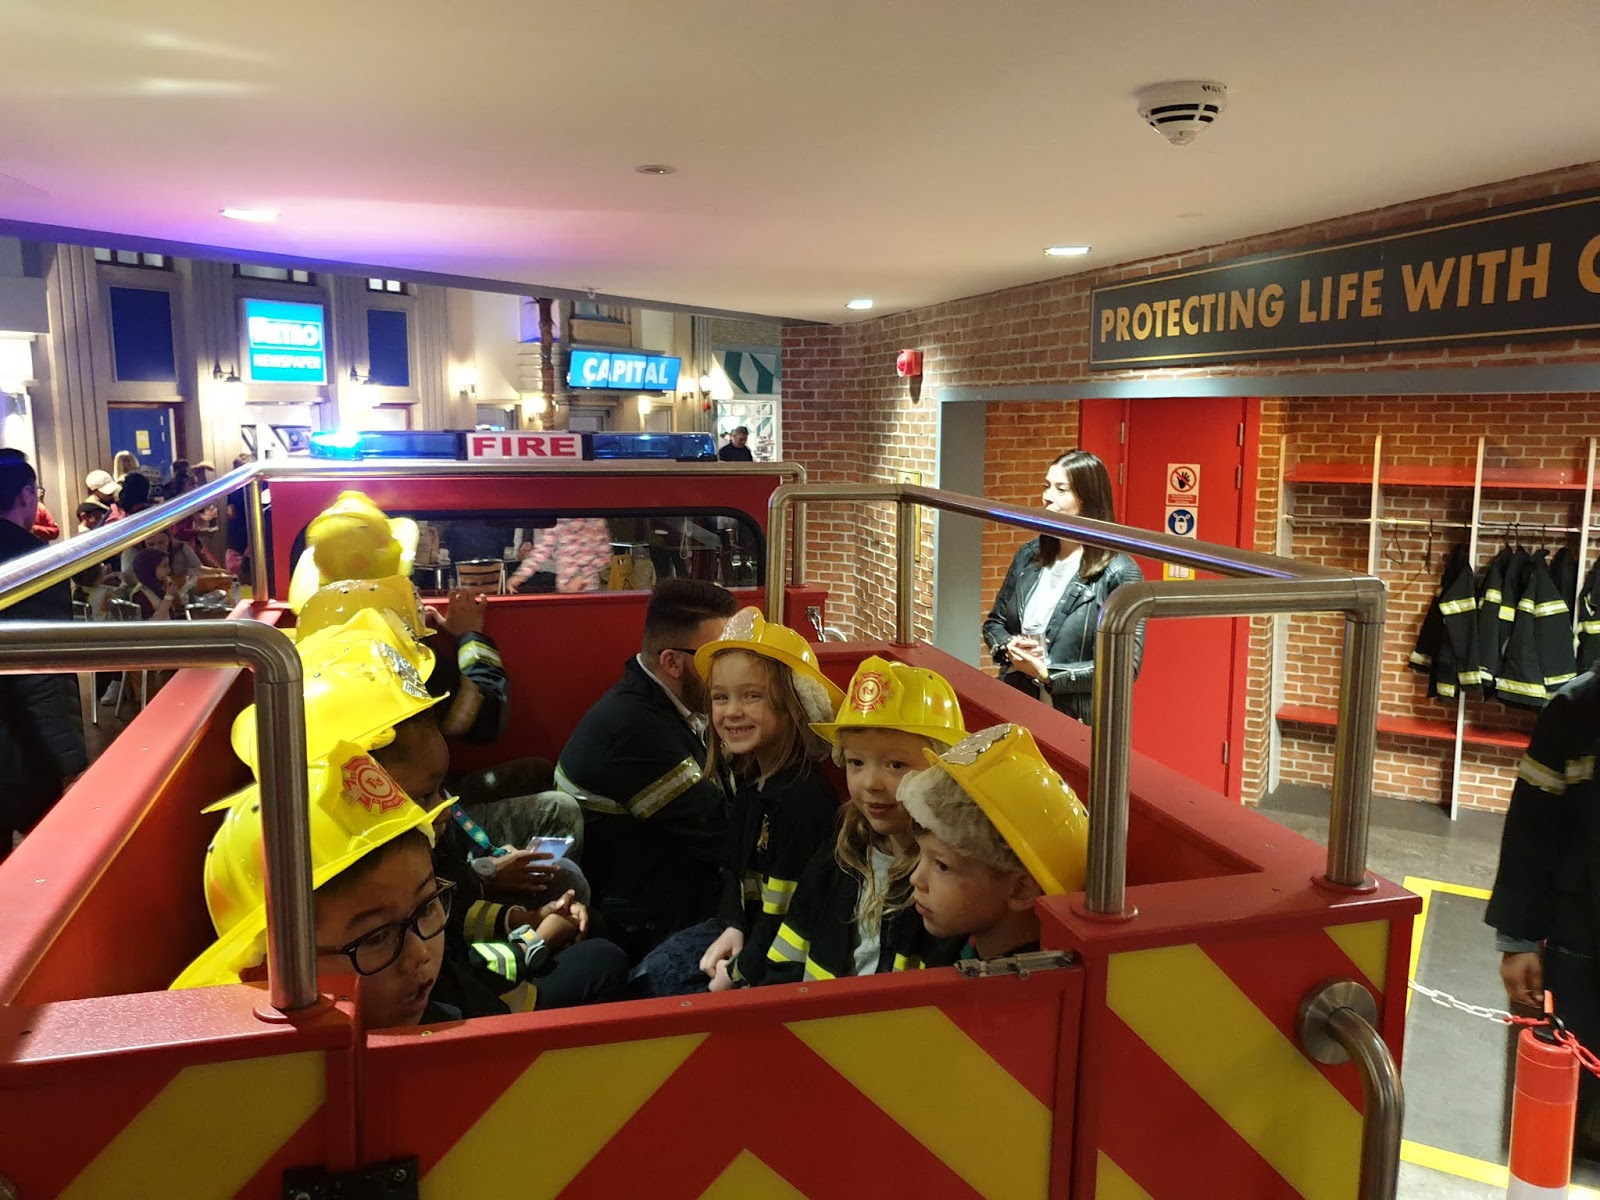 kidzania firetruckkidzania firefighting activity